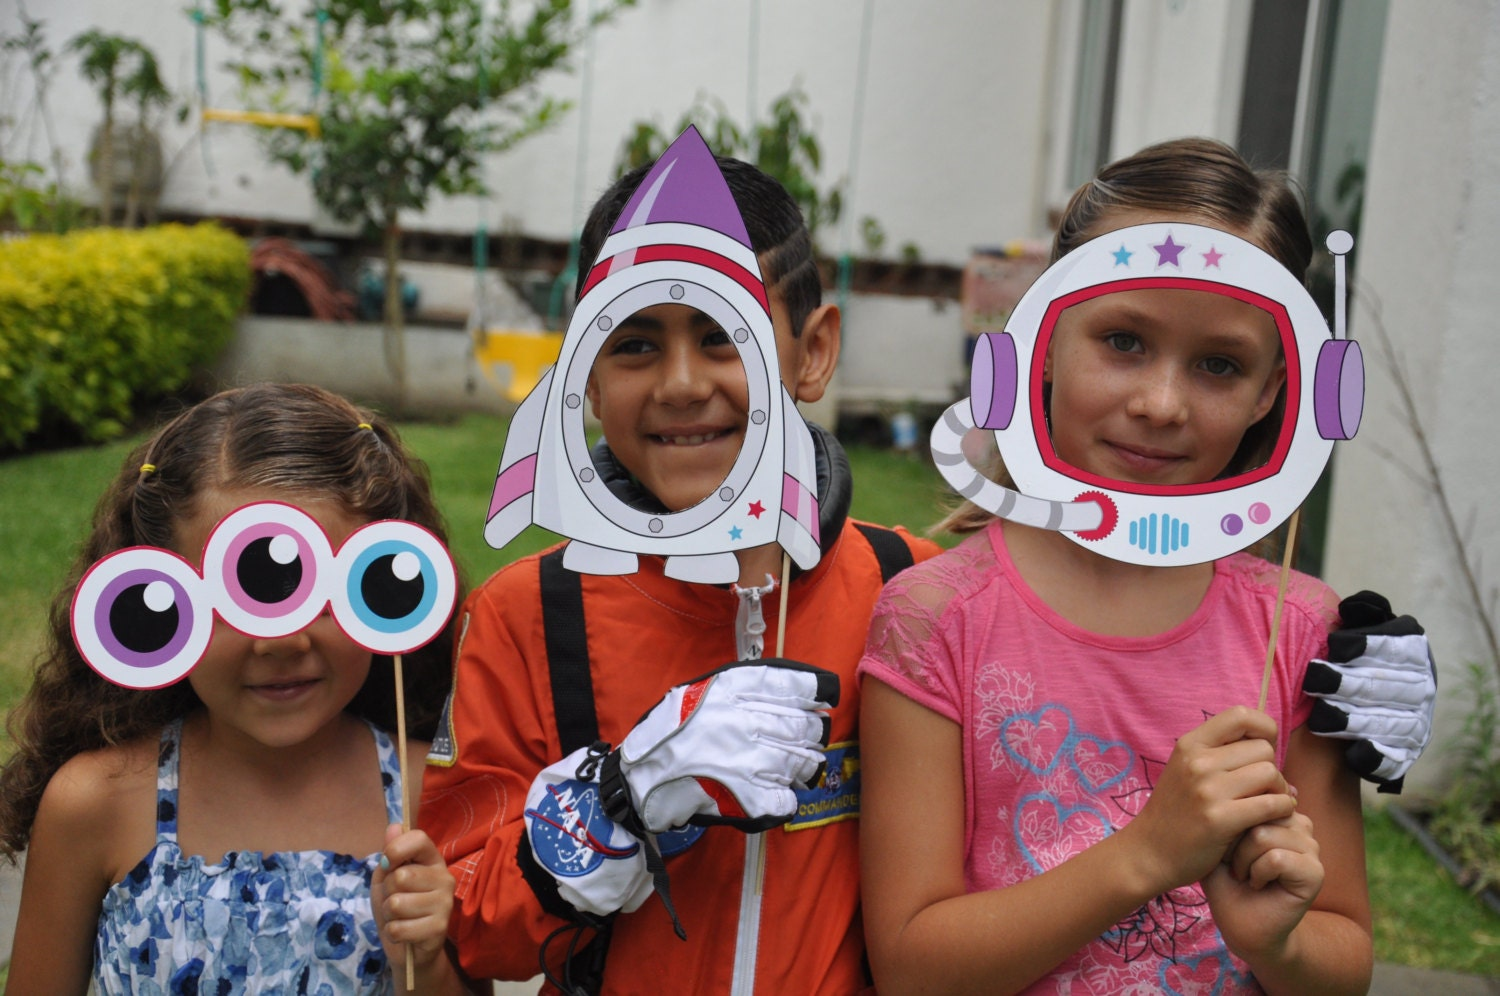 Astronaut Space Party Pdf Printable Outer Space Photo Booth